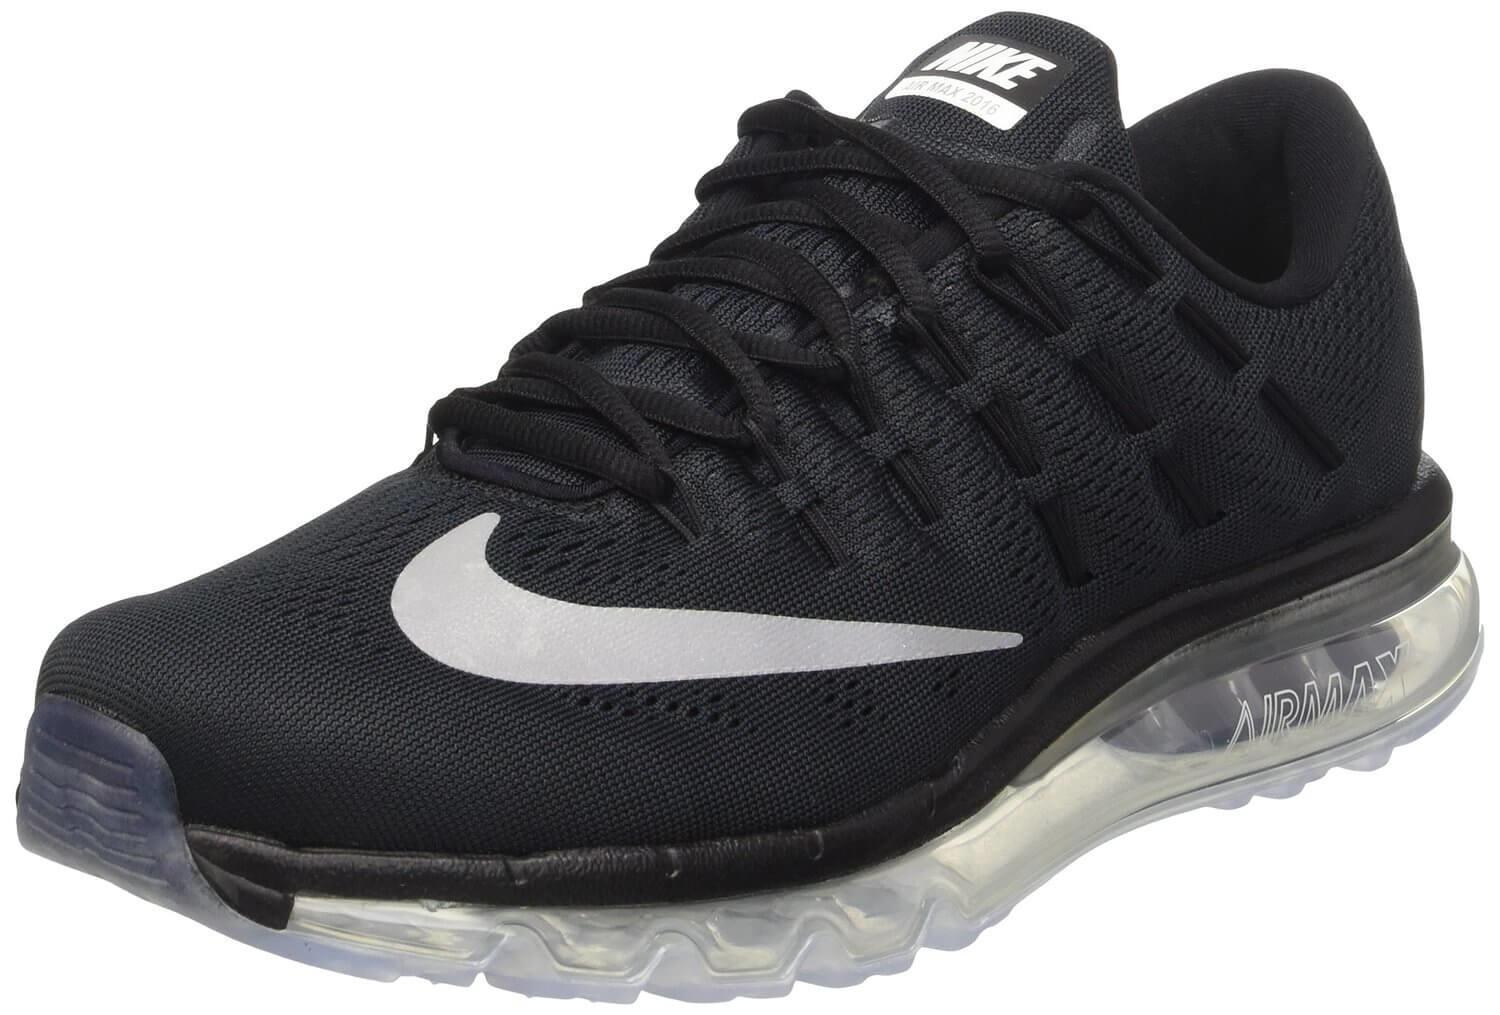 cheap for discount 049ca 3da64 Nike Air Max 2016 Reviewed   Rated for Quality